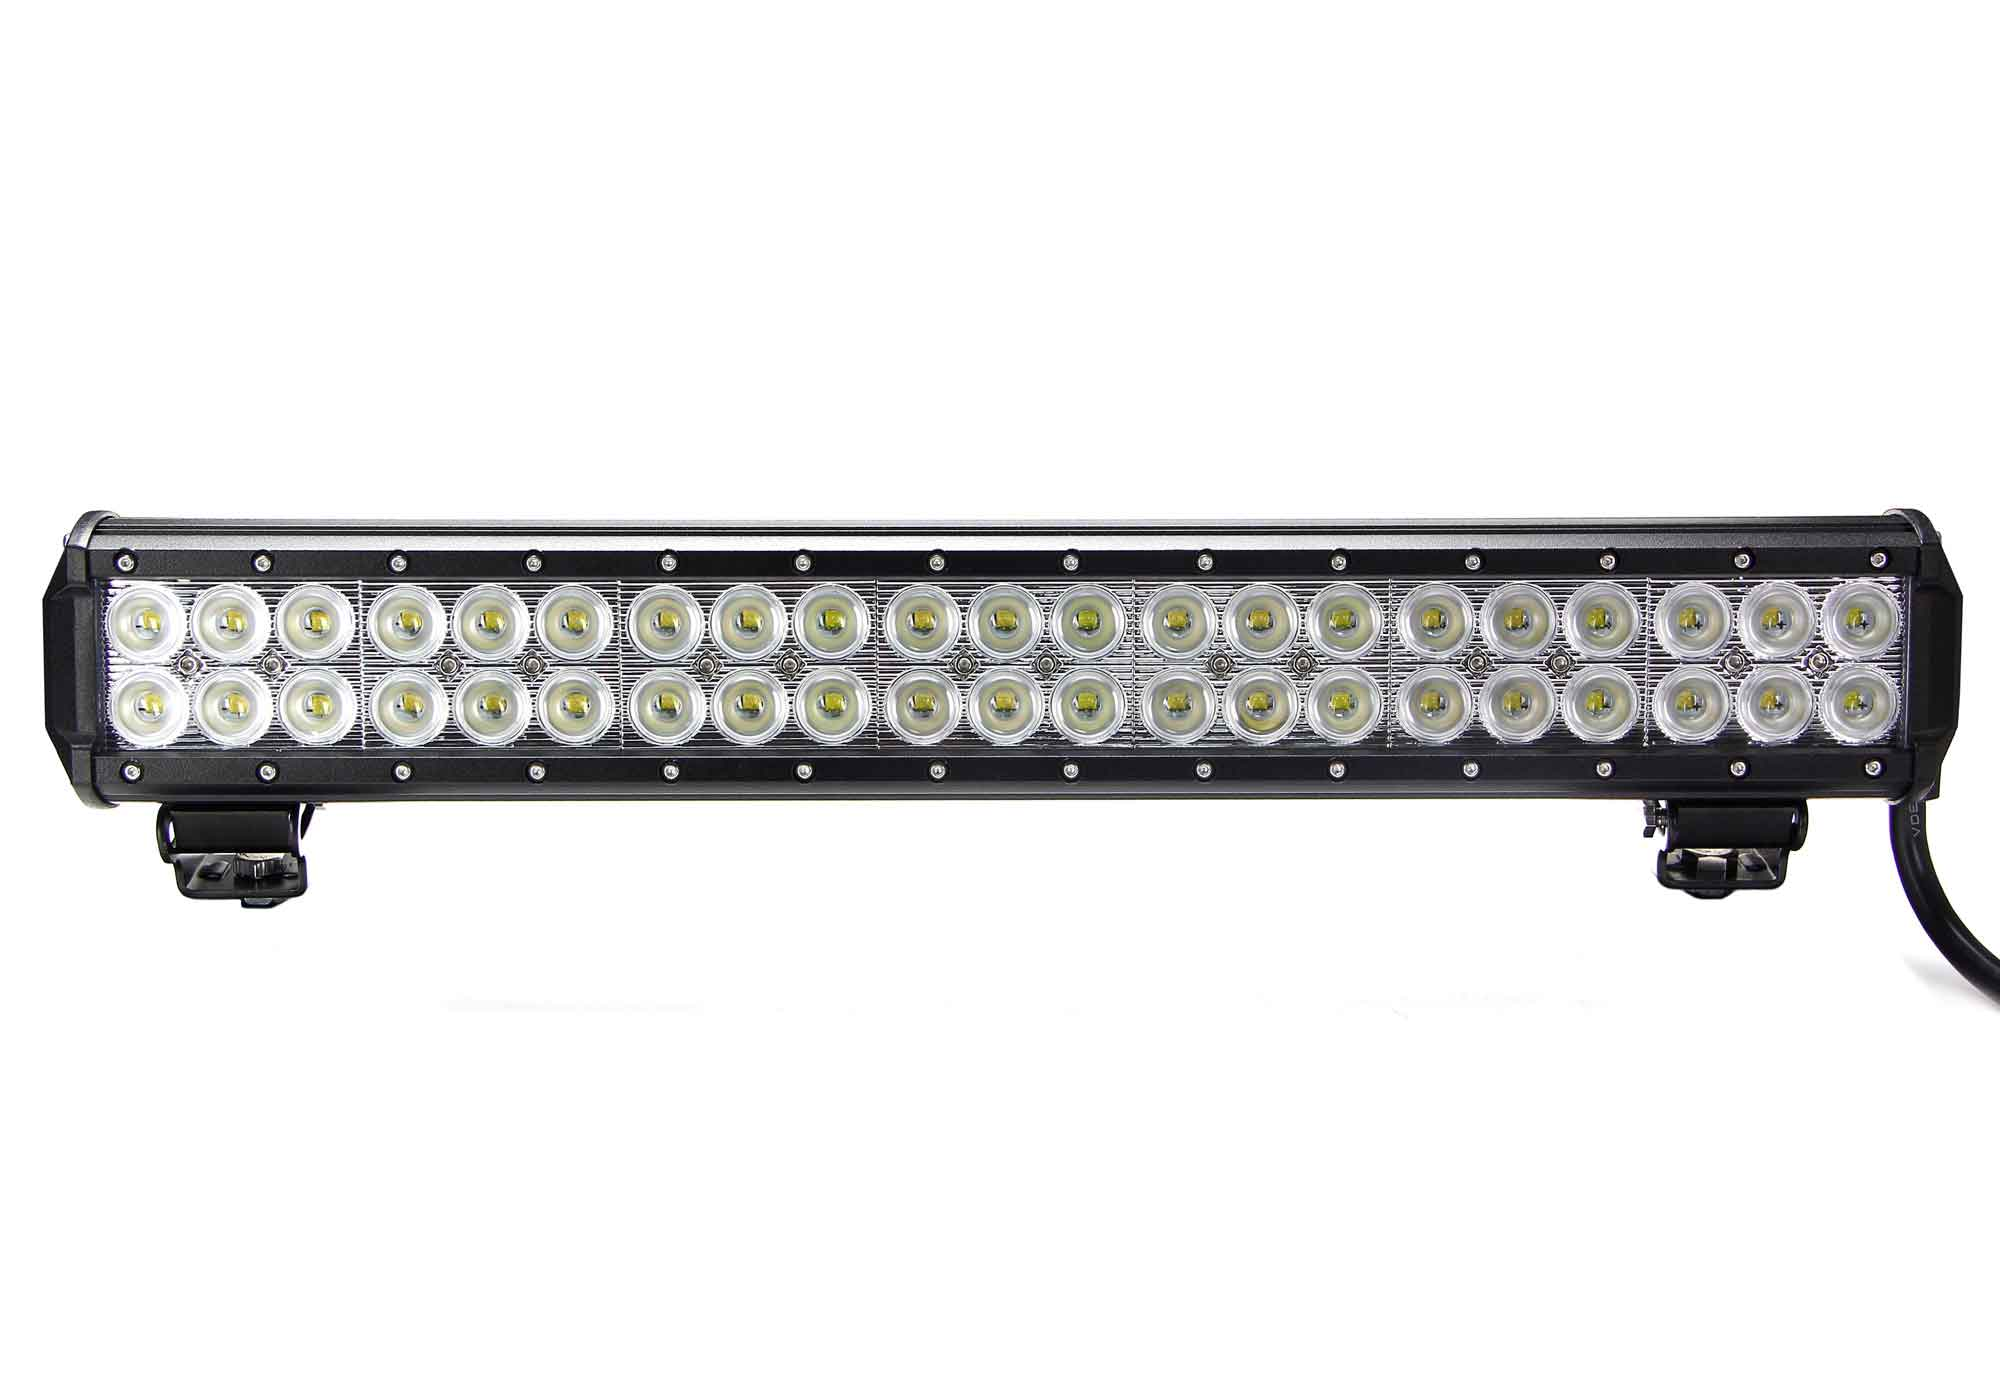 Vortex series led light bar 20 inch 126 watt combo tuff led lights defcon22in126w4 aloadofball Image collections